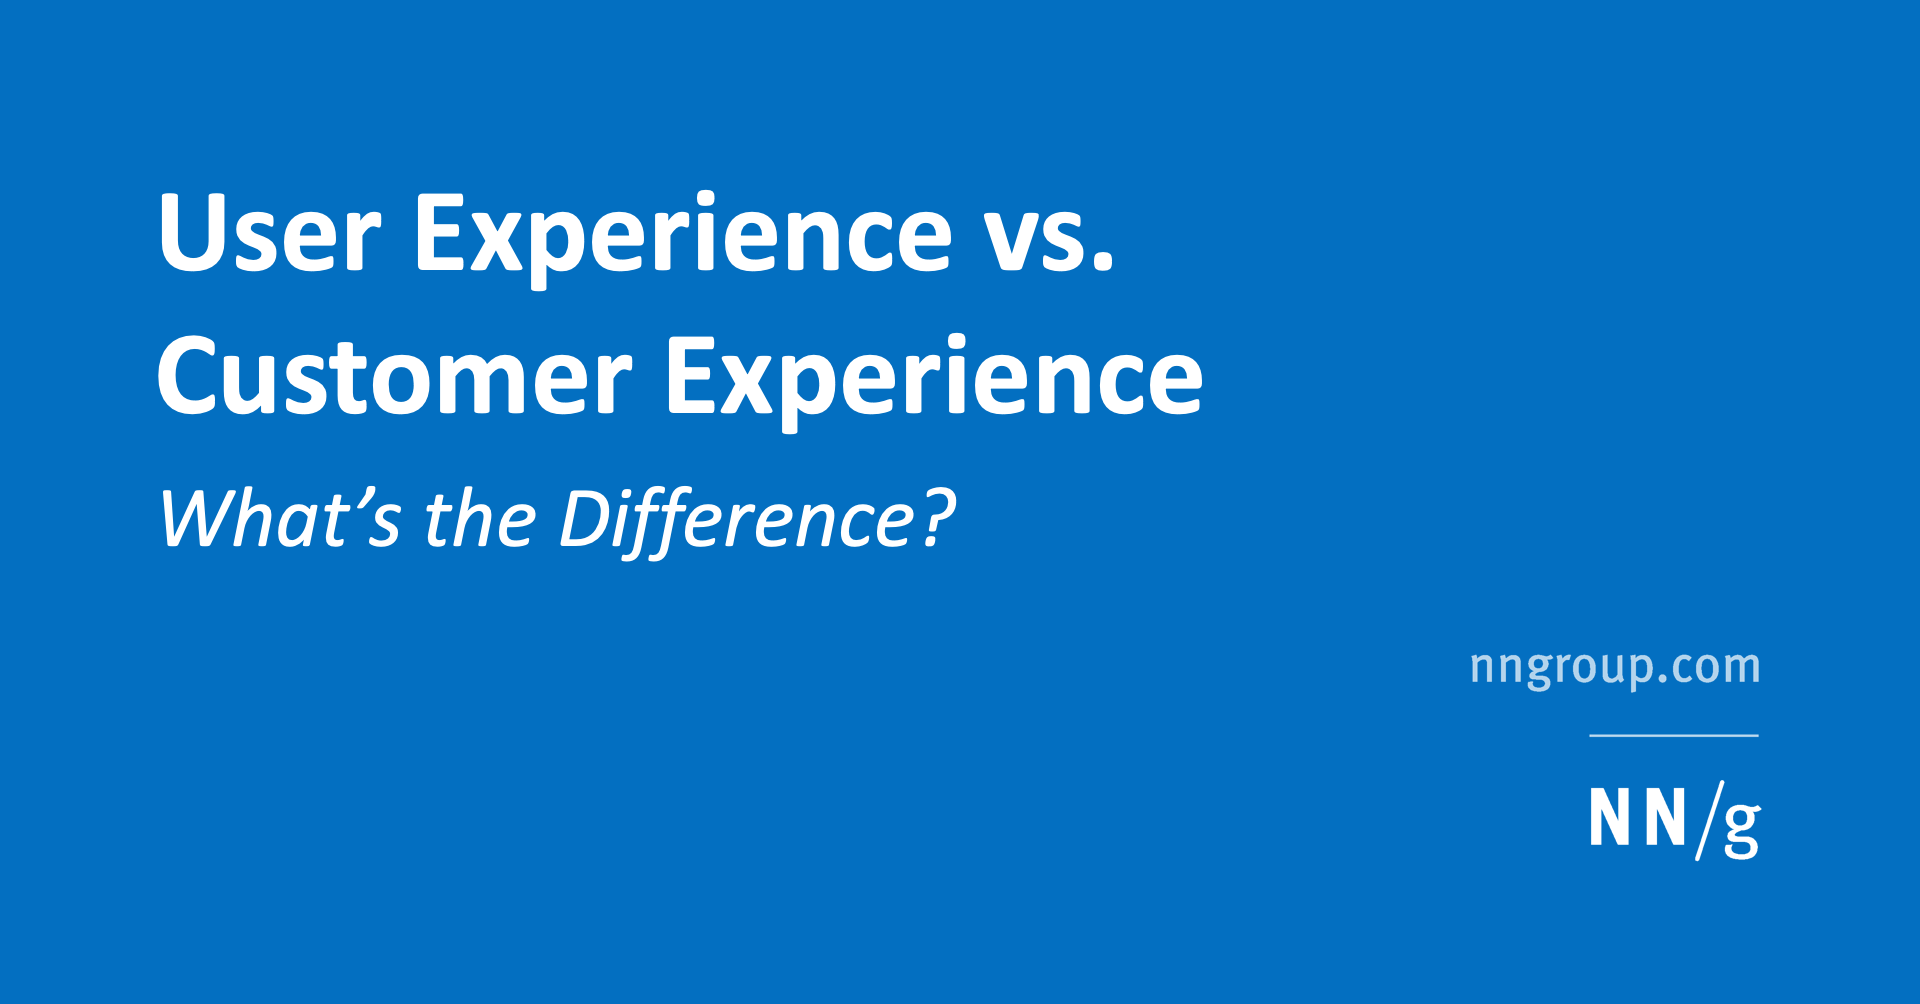 User Experience vs. Customer Experience: What's The Difference?